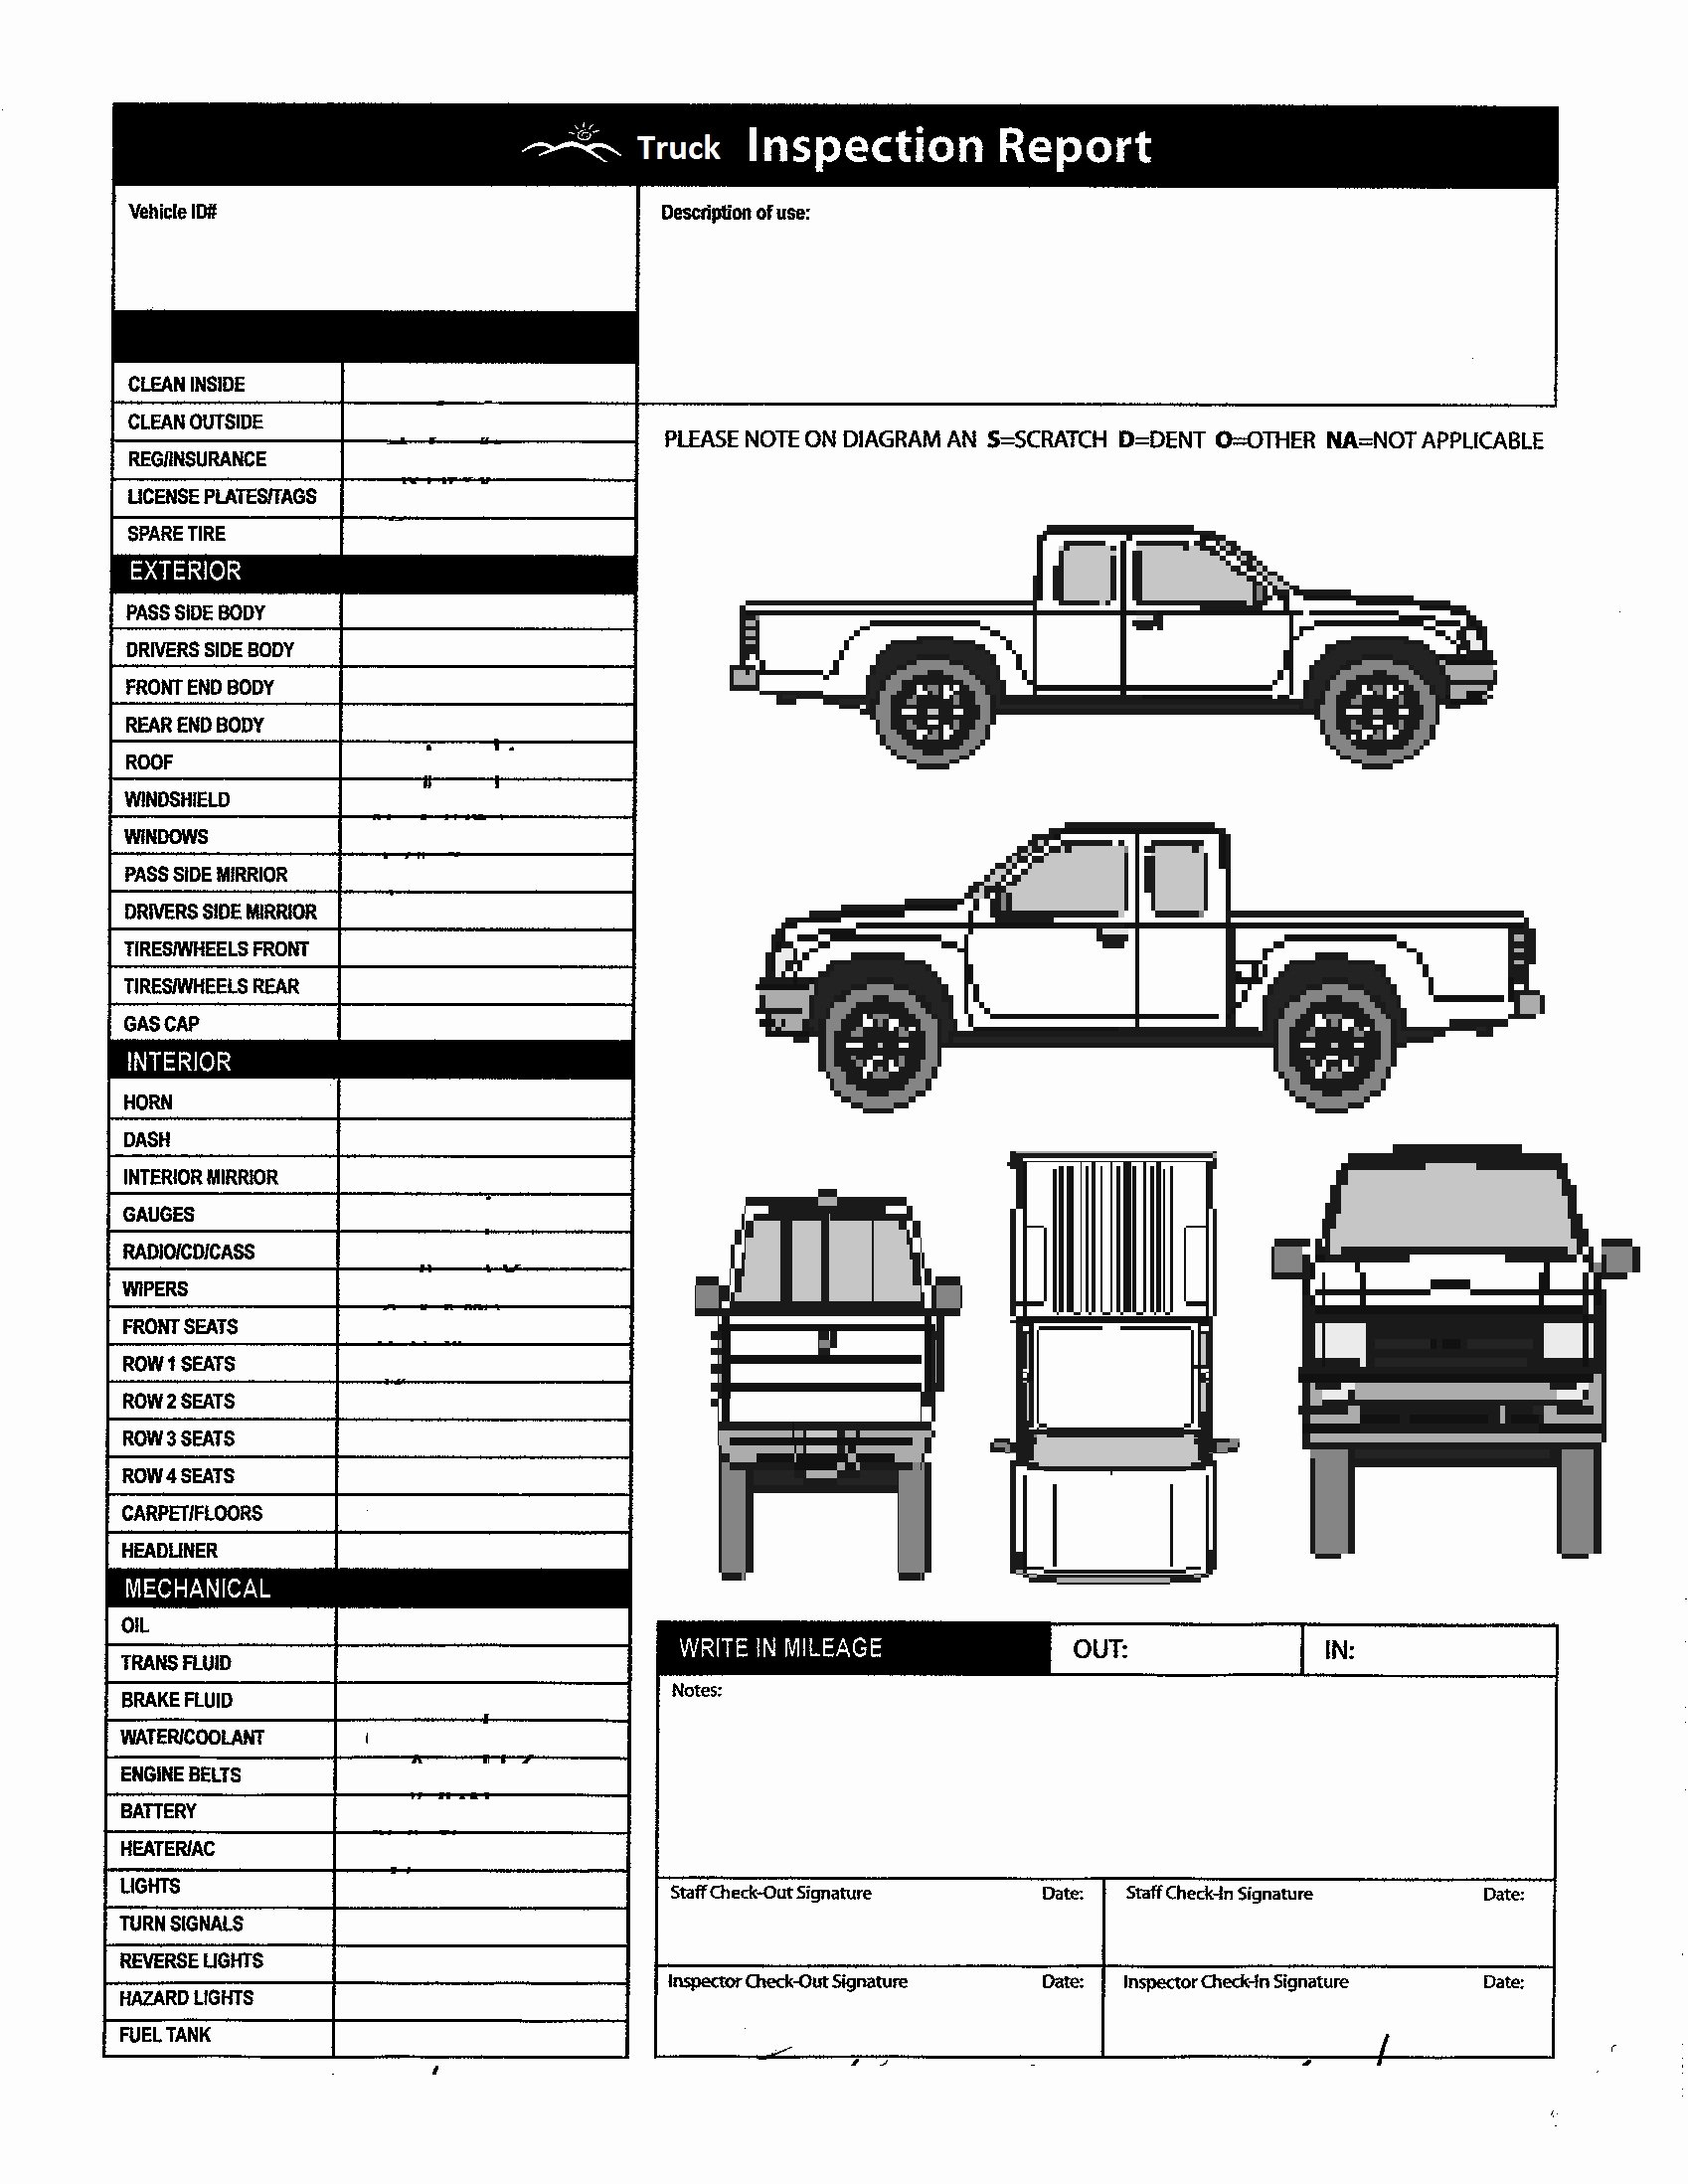 Checklist Printable Vehicle Inspection Checklist Template